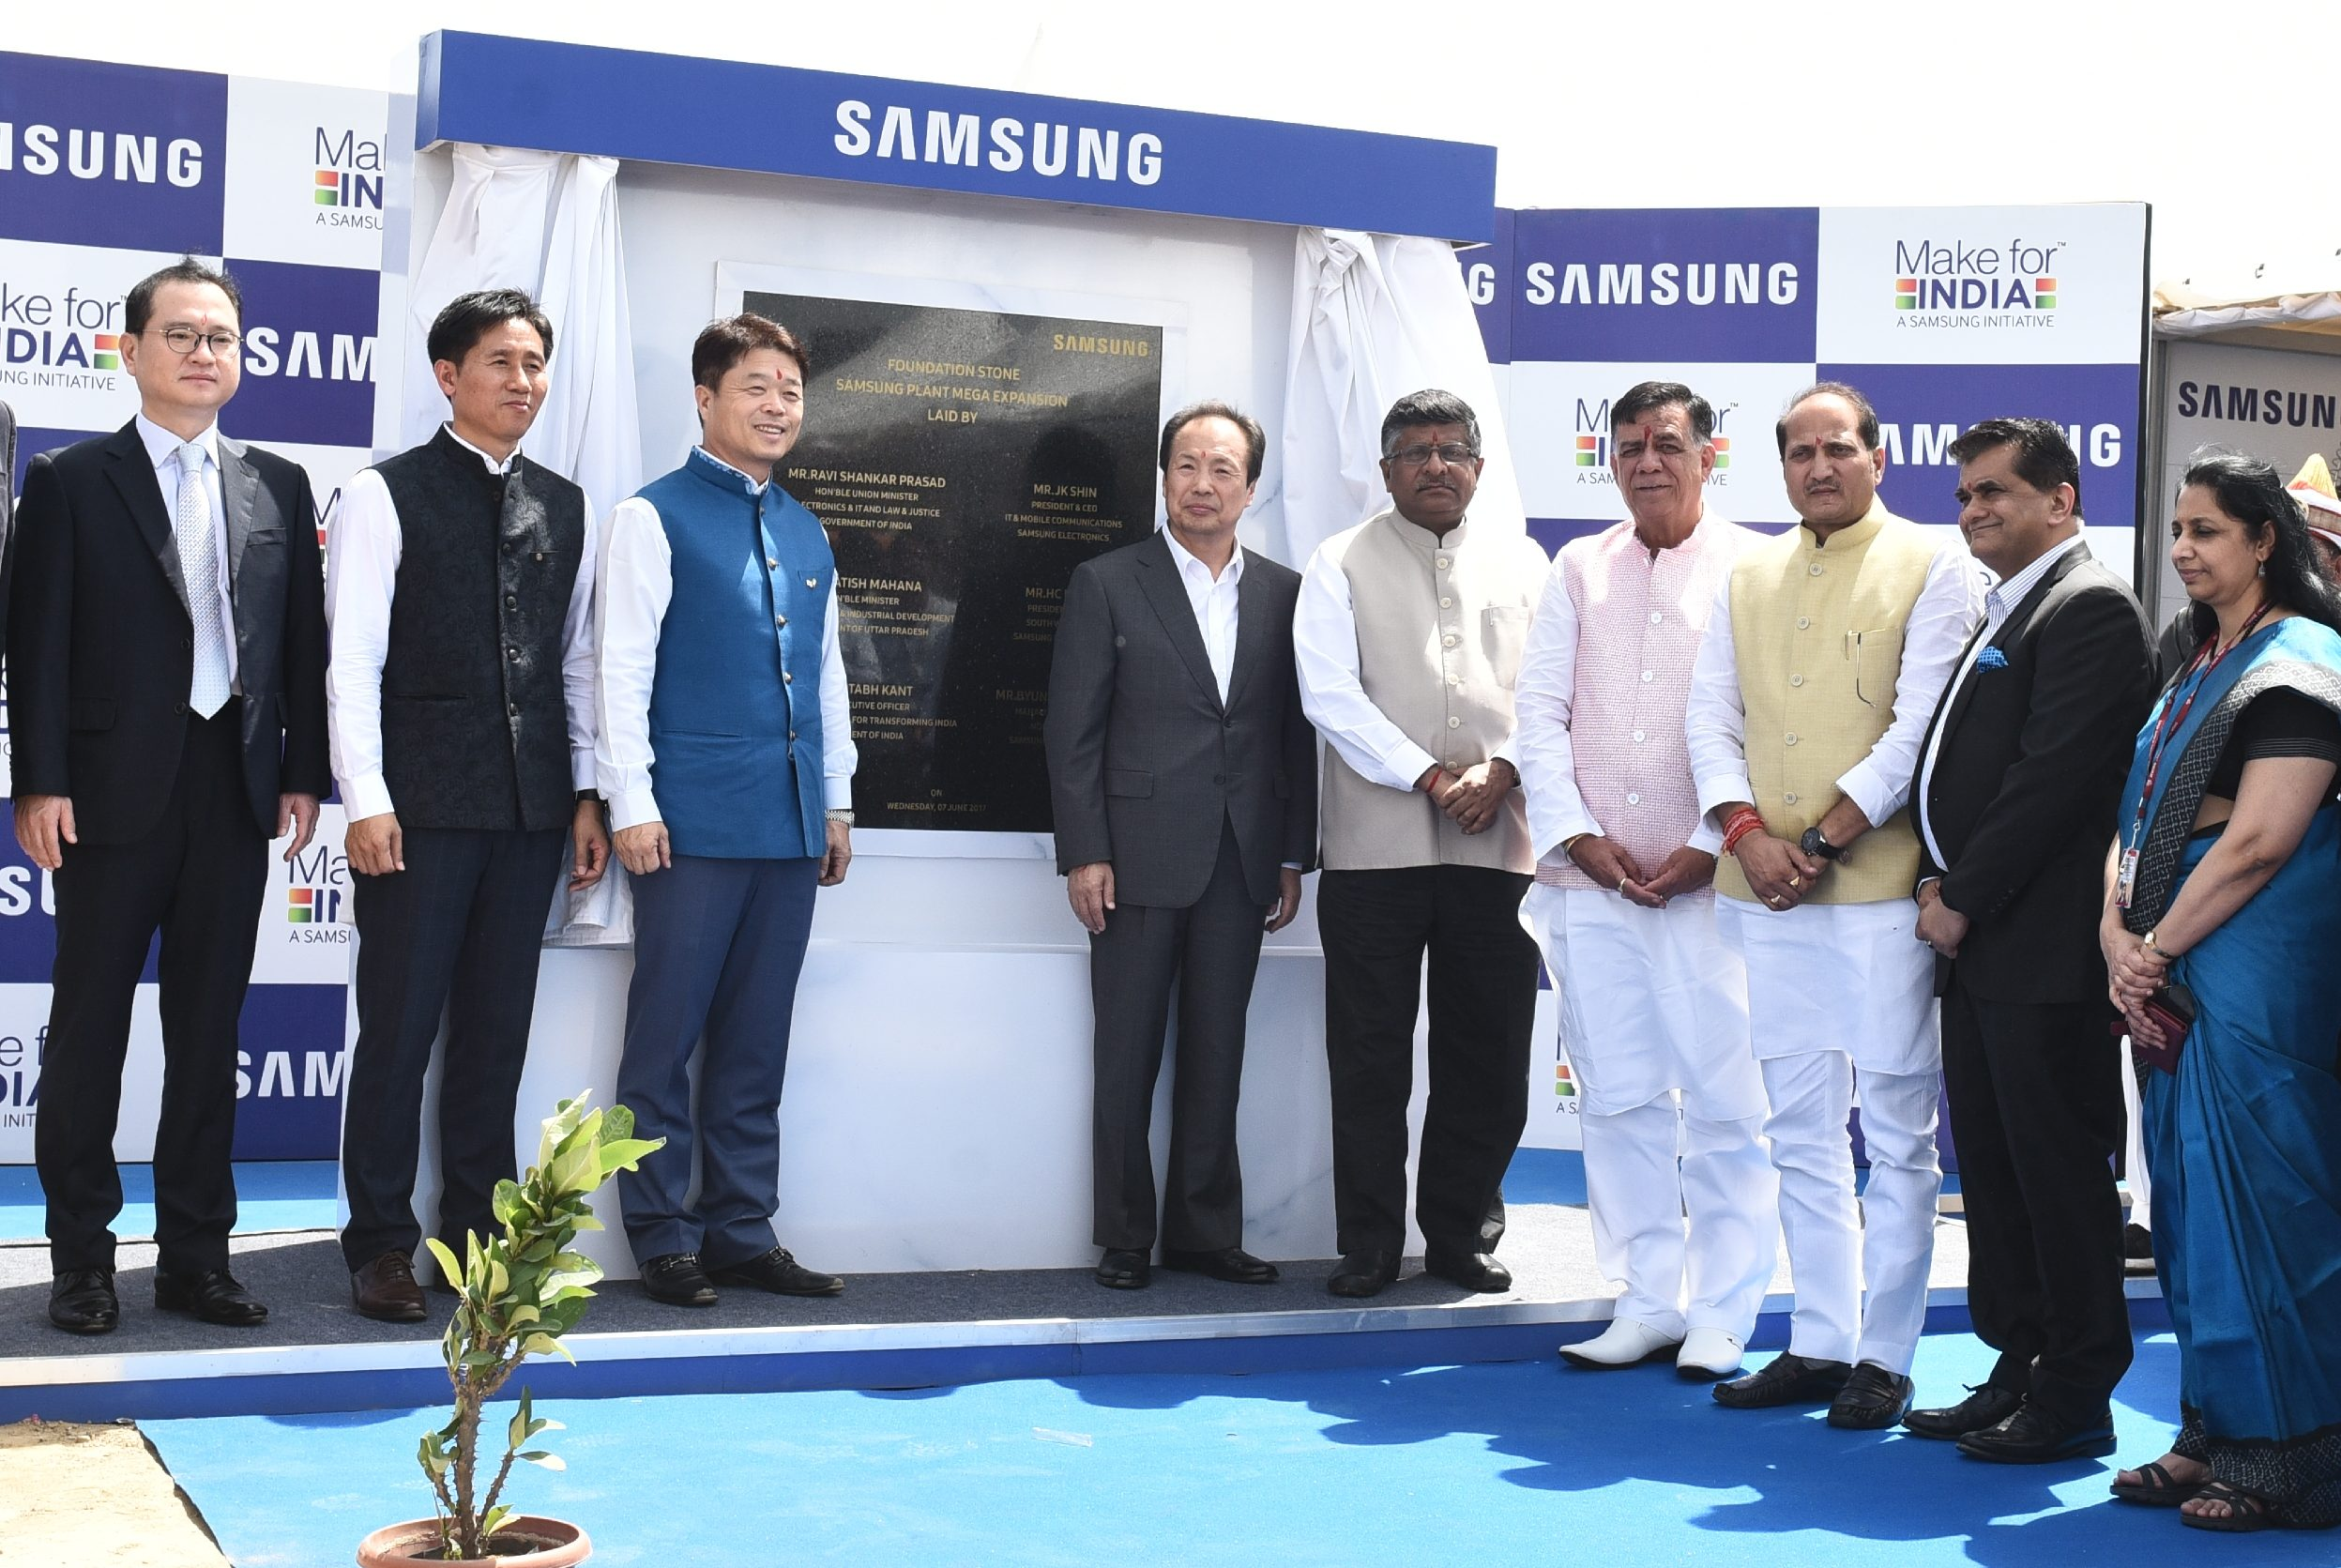 Samsung Electronics Co Ltd Today Announced An Investment Of Inr 4 915 Crore In India The Will Be Used To Add Fresh Capacity At S